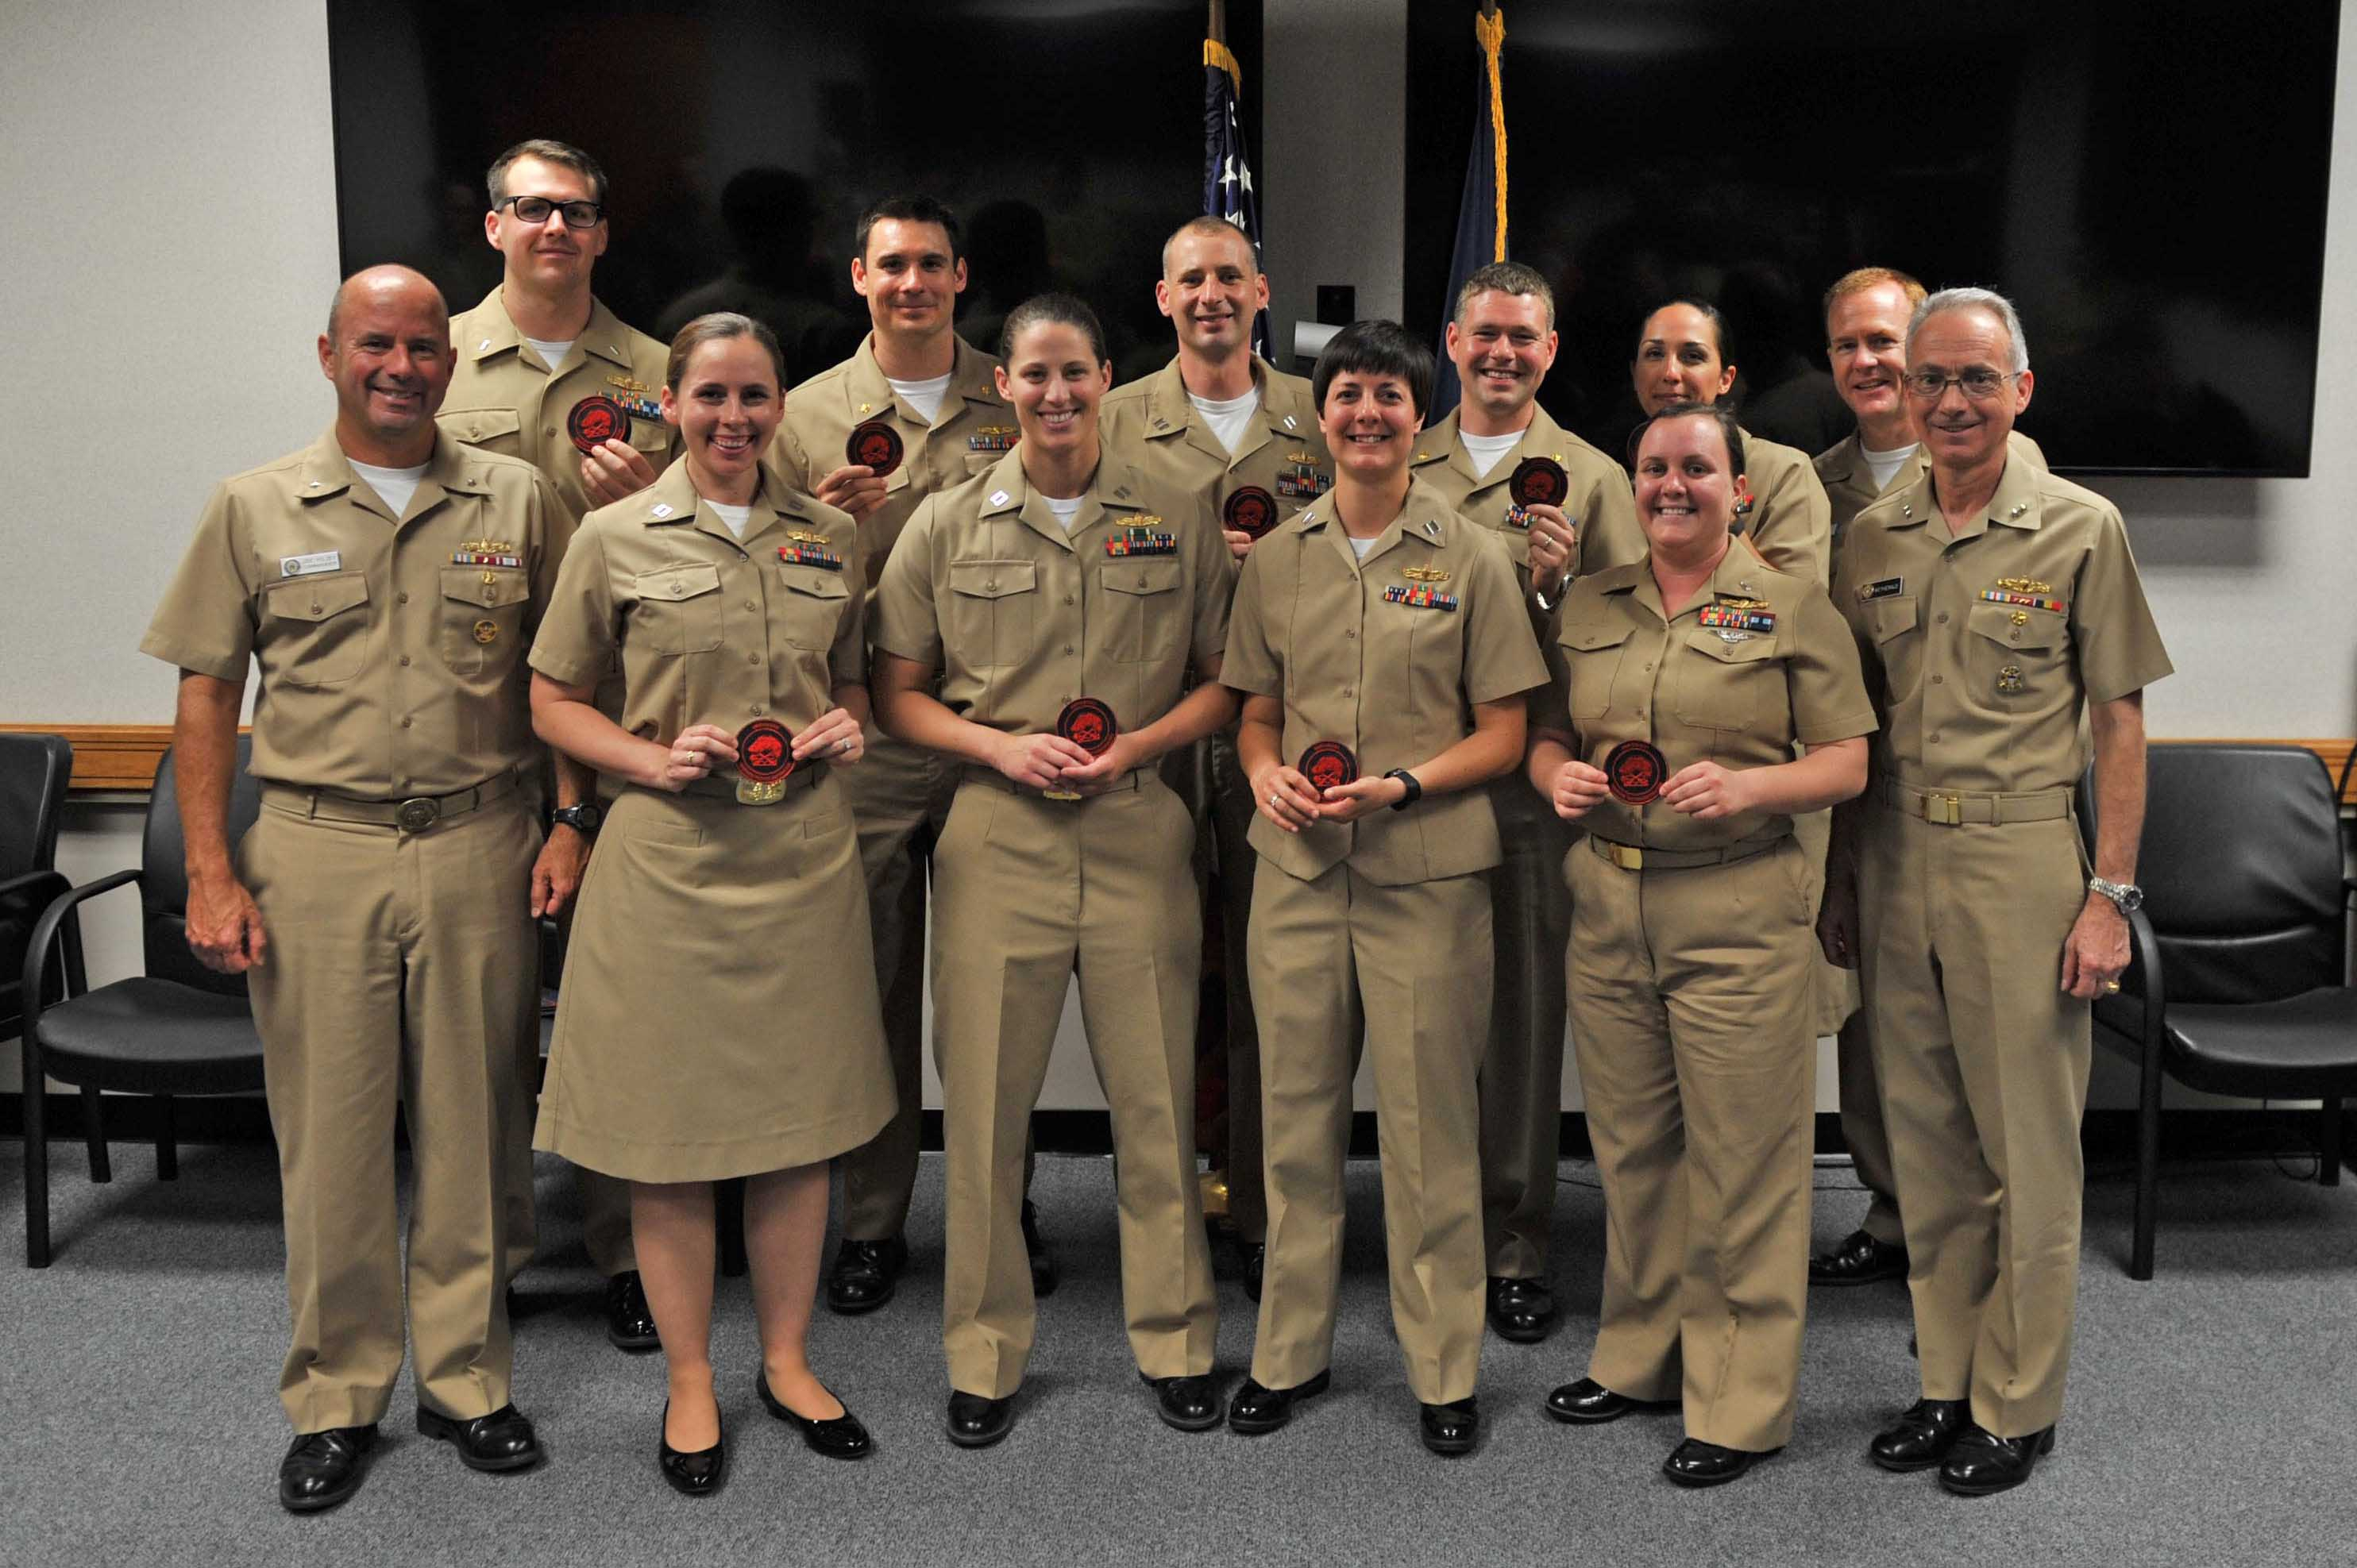 Rear Adm. Jim Kilby, commander of Naval Surface and Mine Warfighting Development Center (SMWDC), congratulates graduates of the first Amphibious Warfare Tactics Instructor course. US Navy photo.